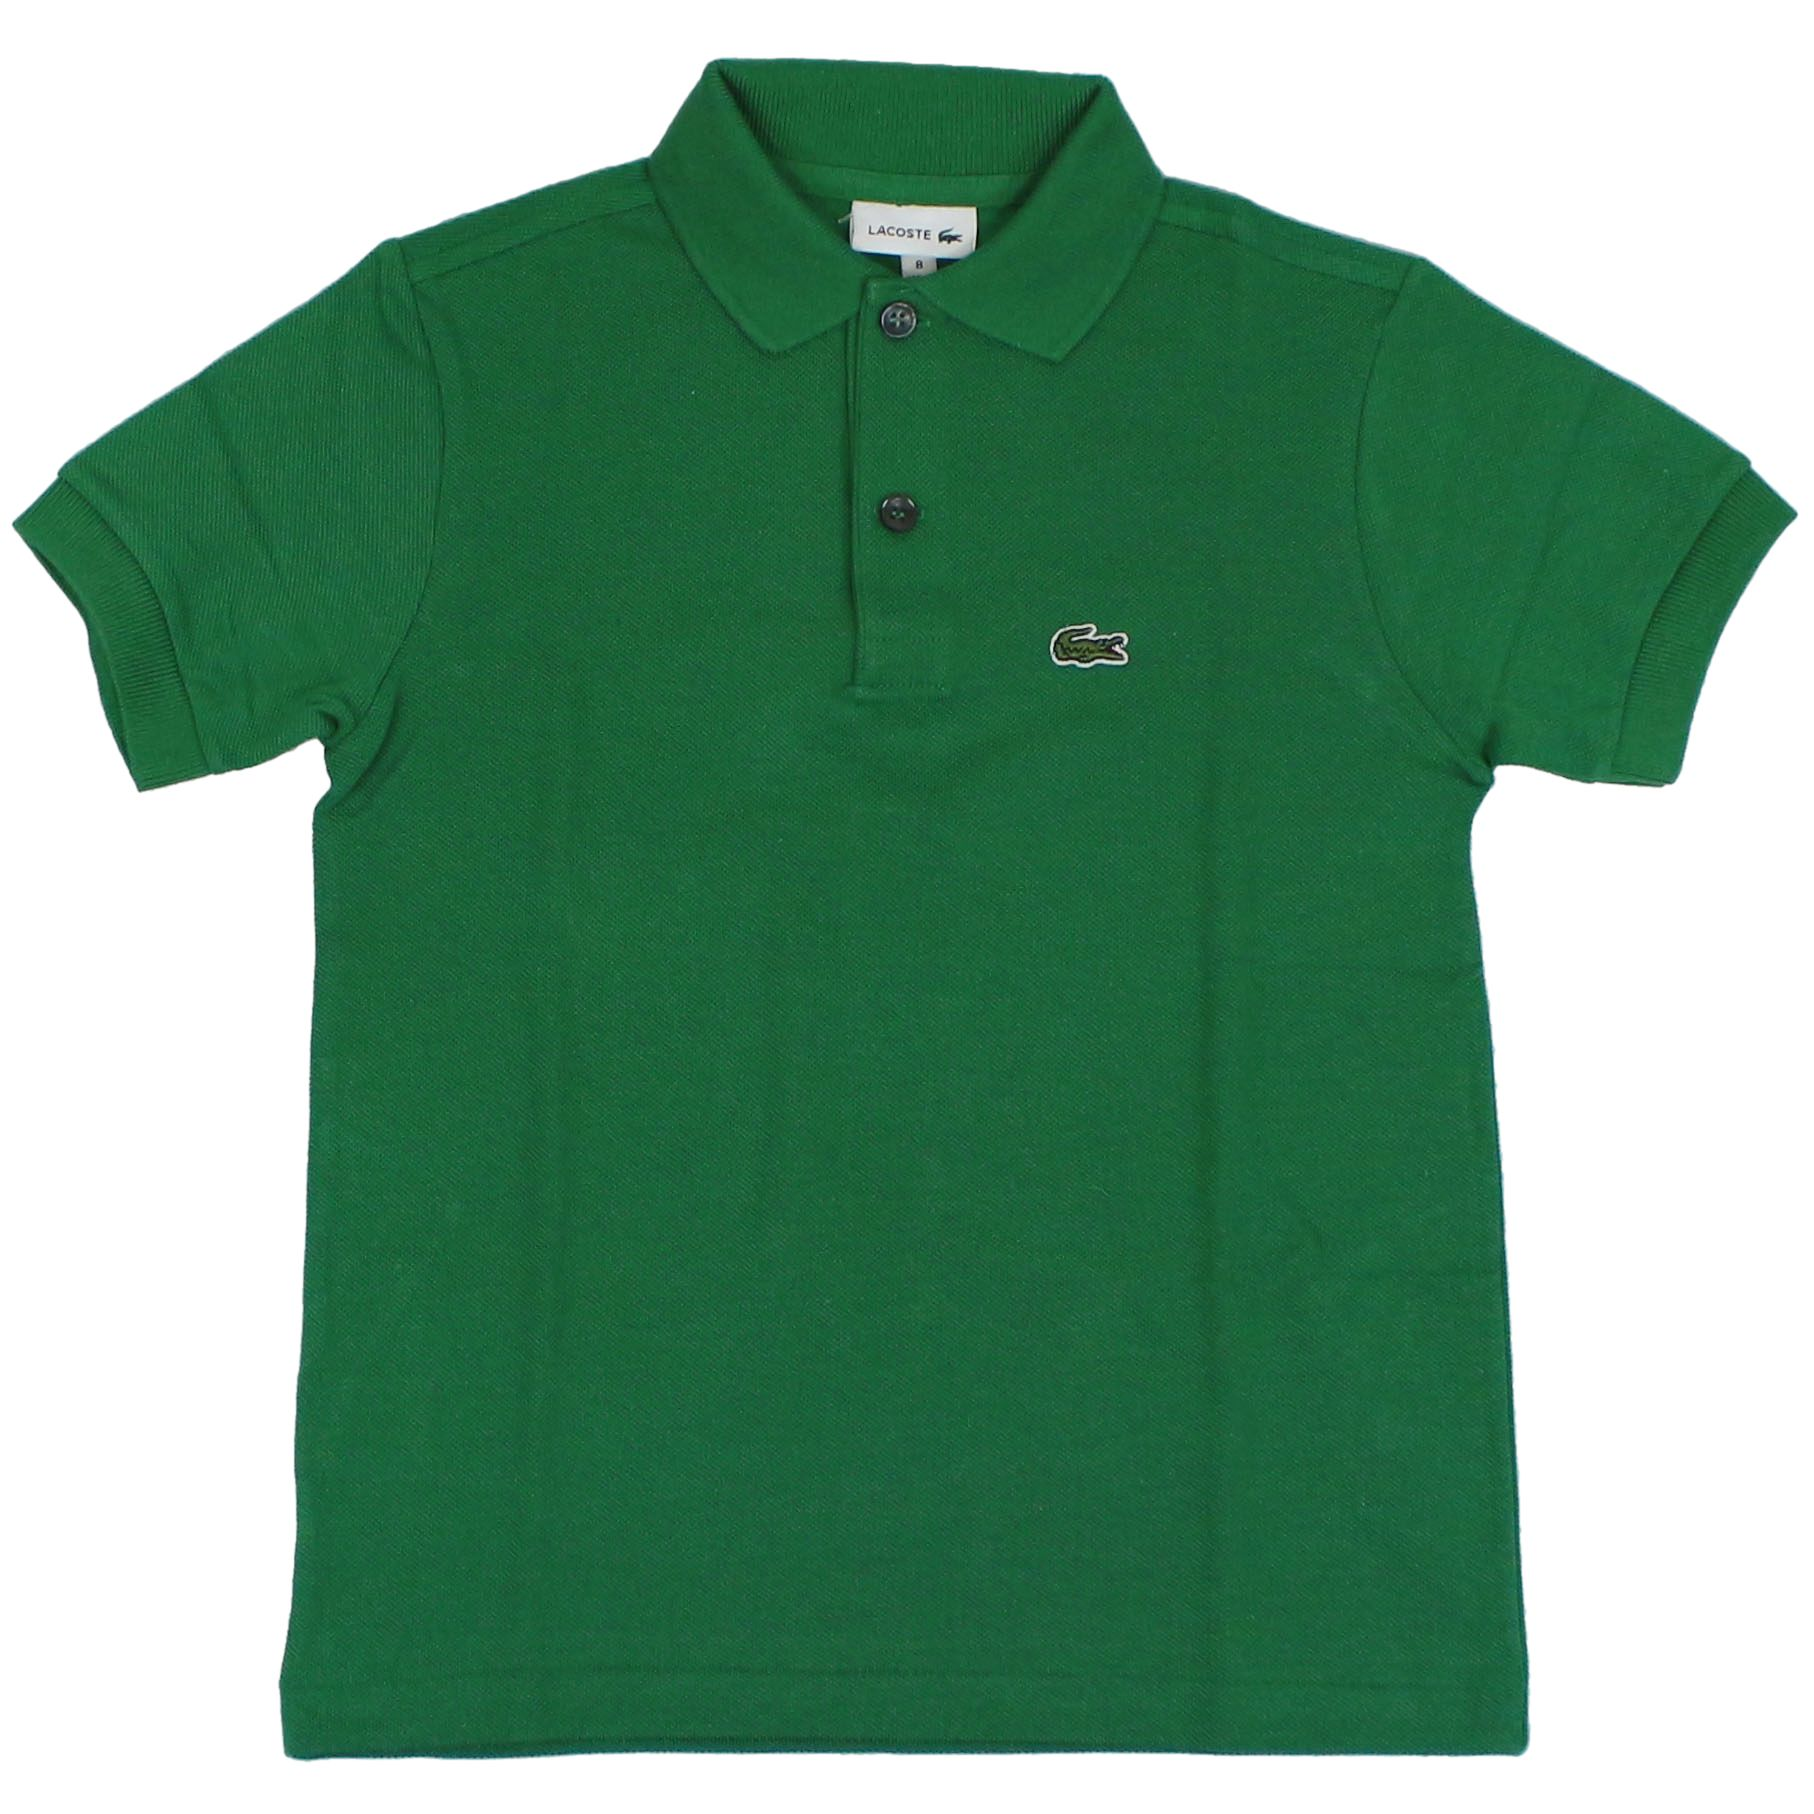 Polo Verde Bambino.2 Button Cotton Polo Shirt